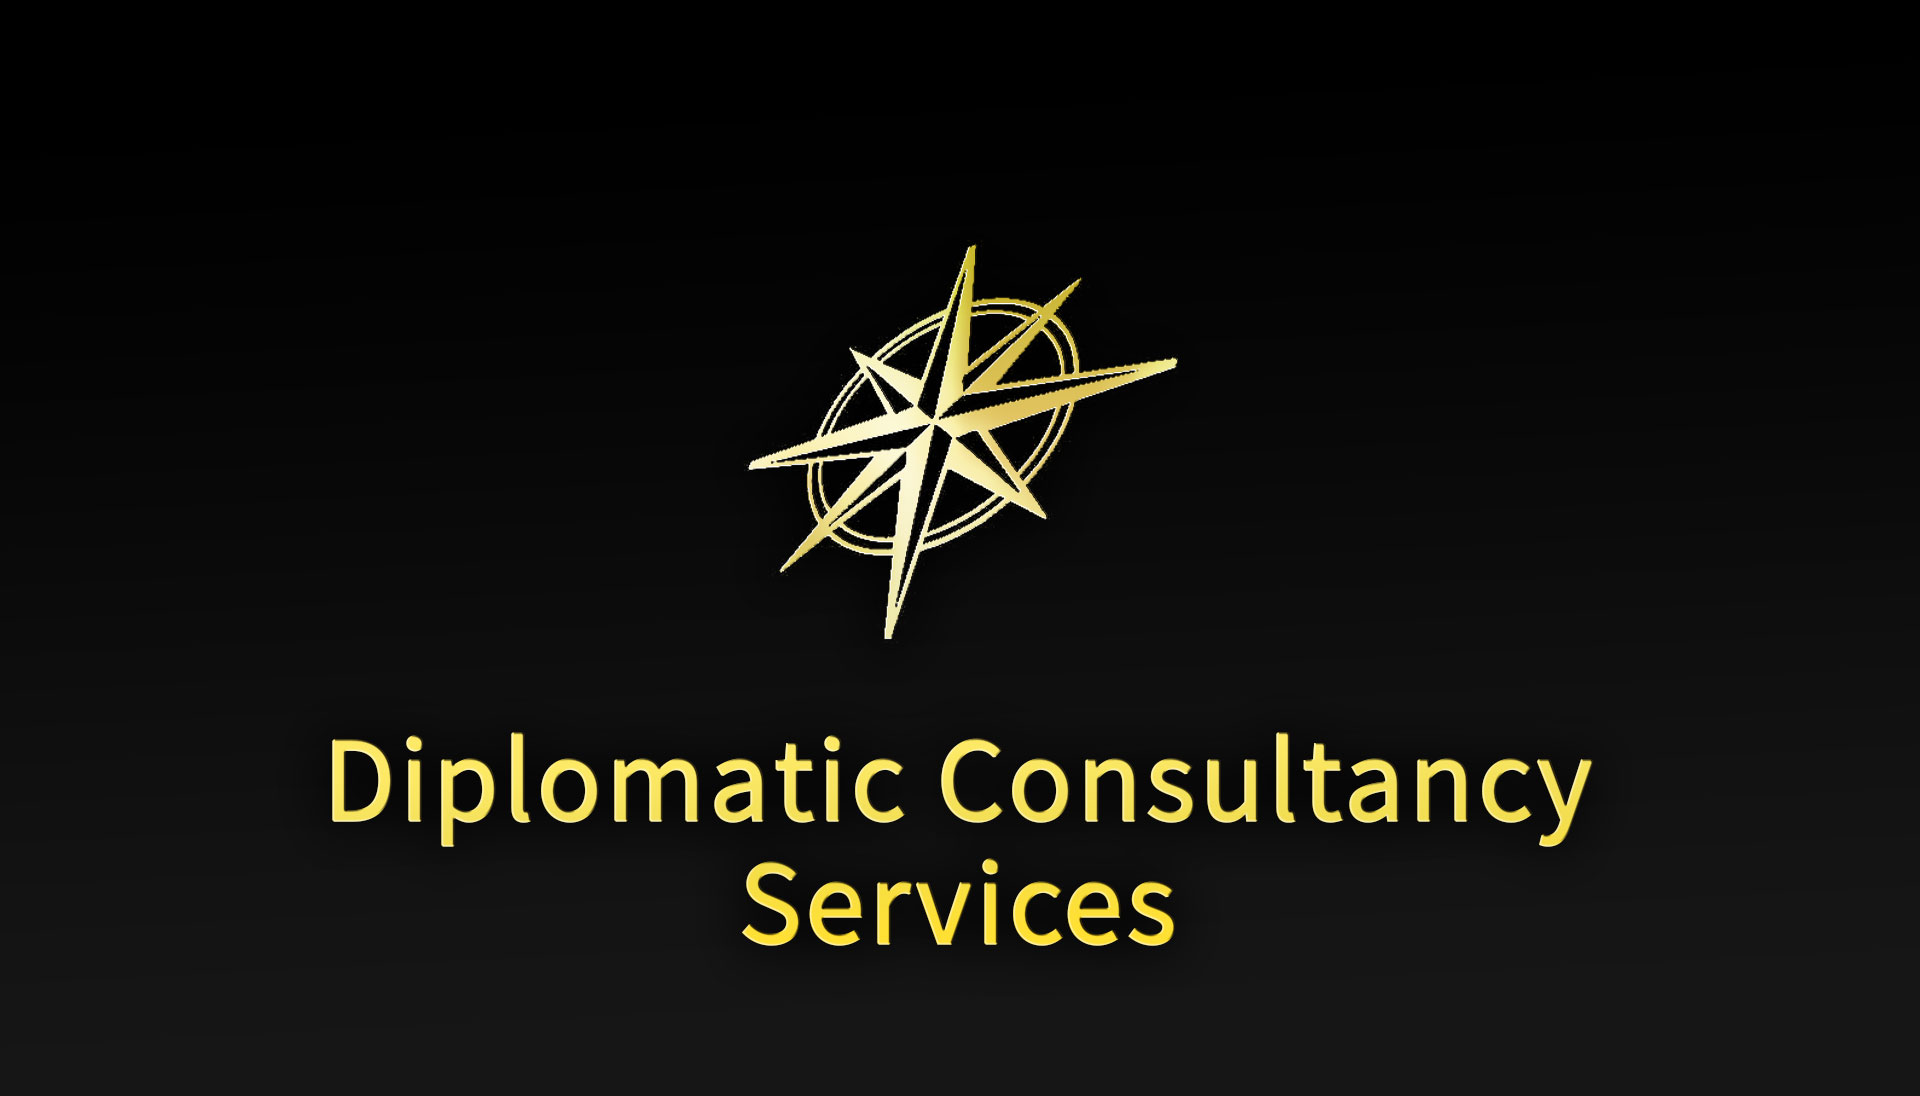 GCI Diplomatic Consultancy Services